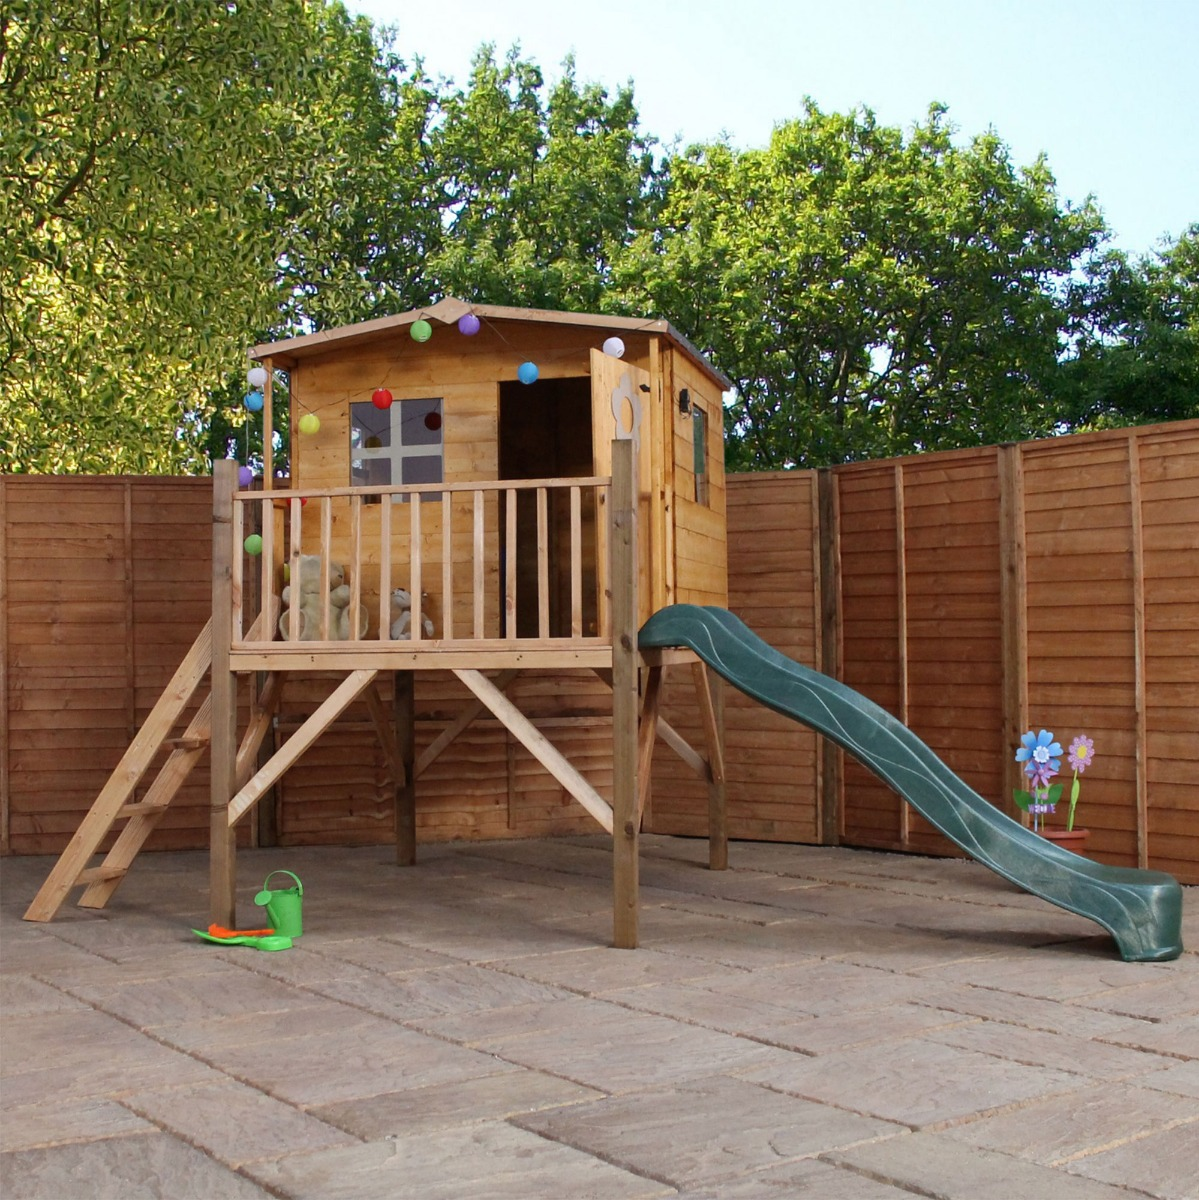 Image of 13' x 6' (3.9x1.8m) Windsor Rose Tower Childrens/ Kids Wooden Garden Playhouse and Slide